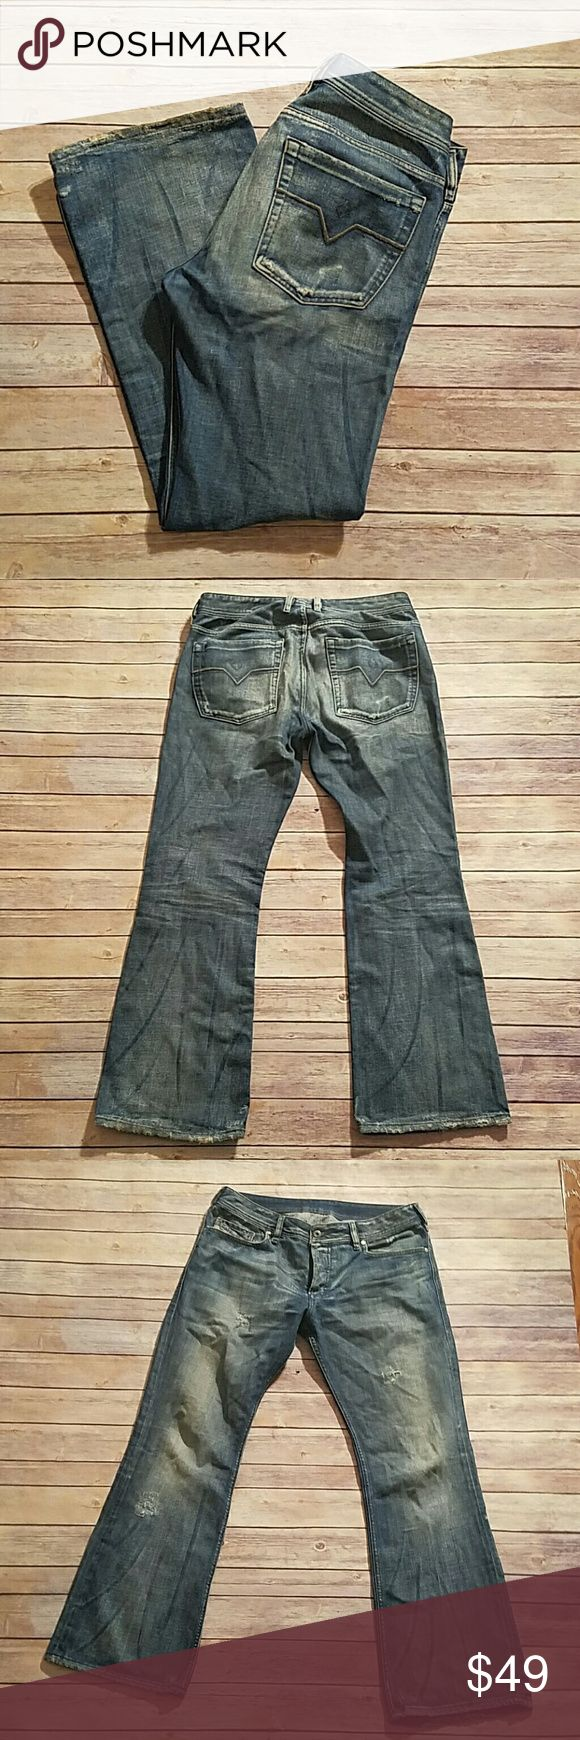 Diesel Zathan Jeans SZ 34 Button Fly Distressed Wear and discoloration on hems. See photos. Button Fly. Distressed. Diesel Jeans Straight